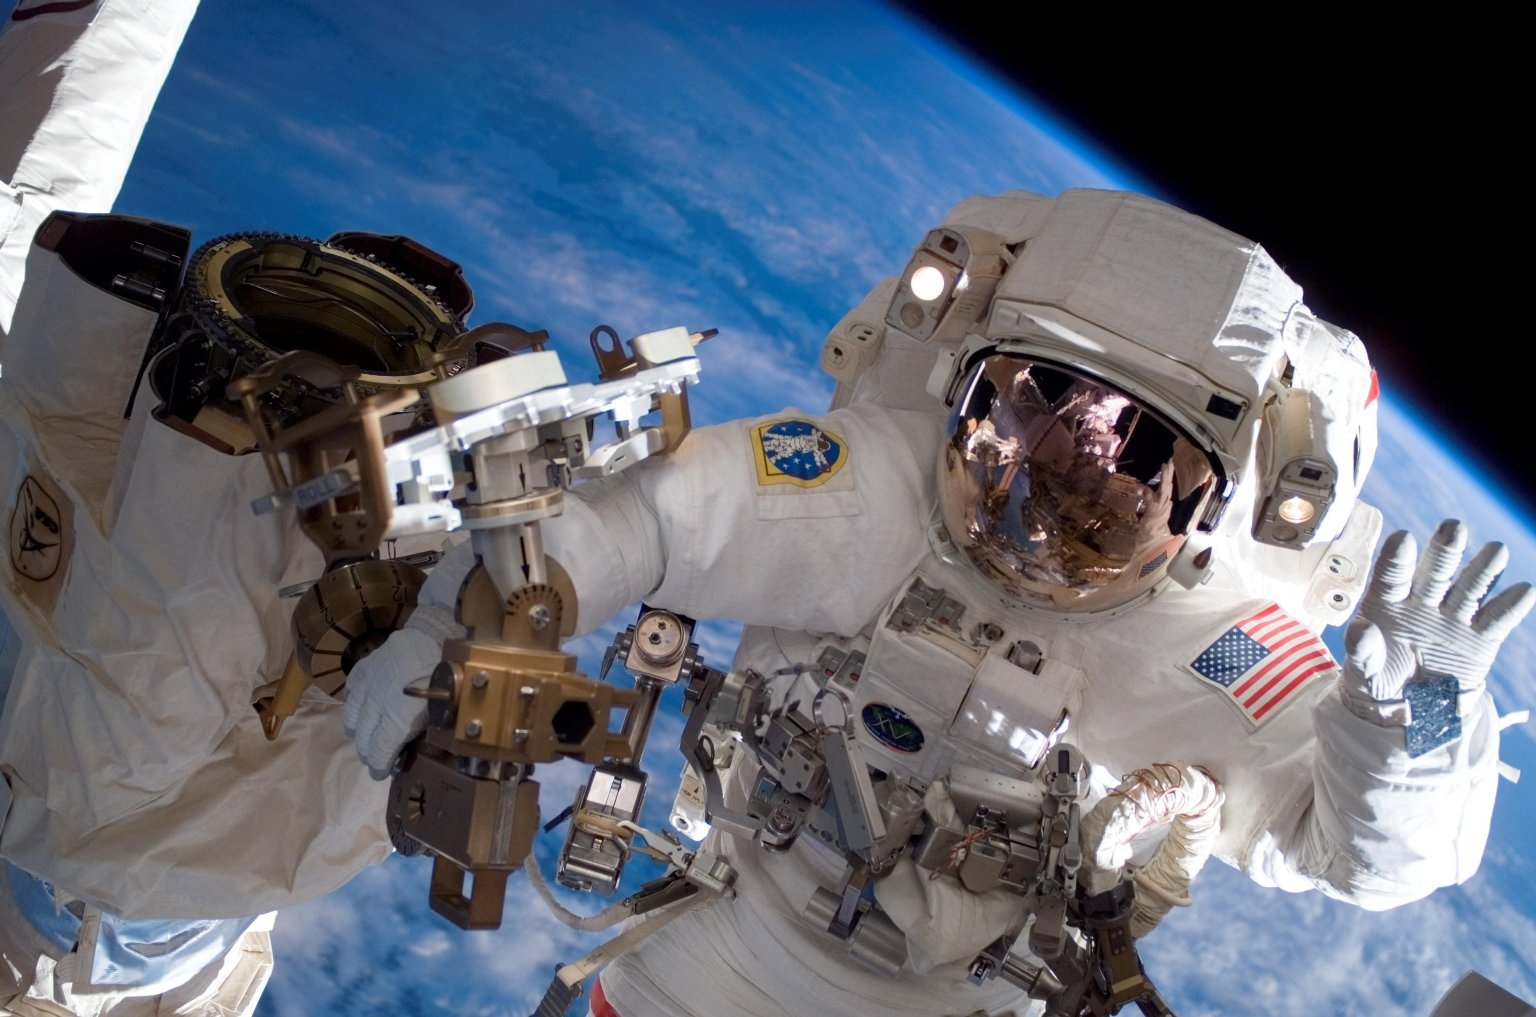 How do humans age in space? | HowStuffWorks